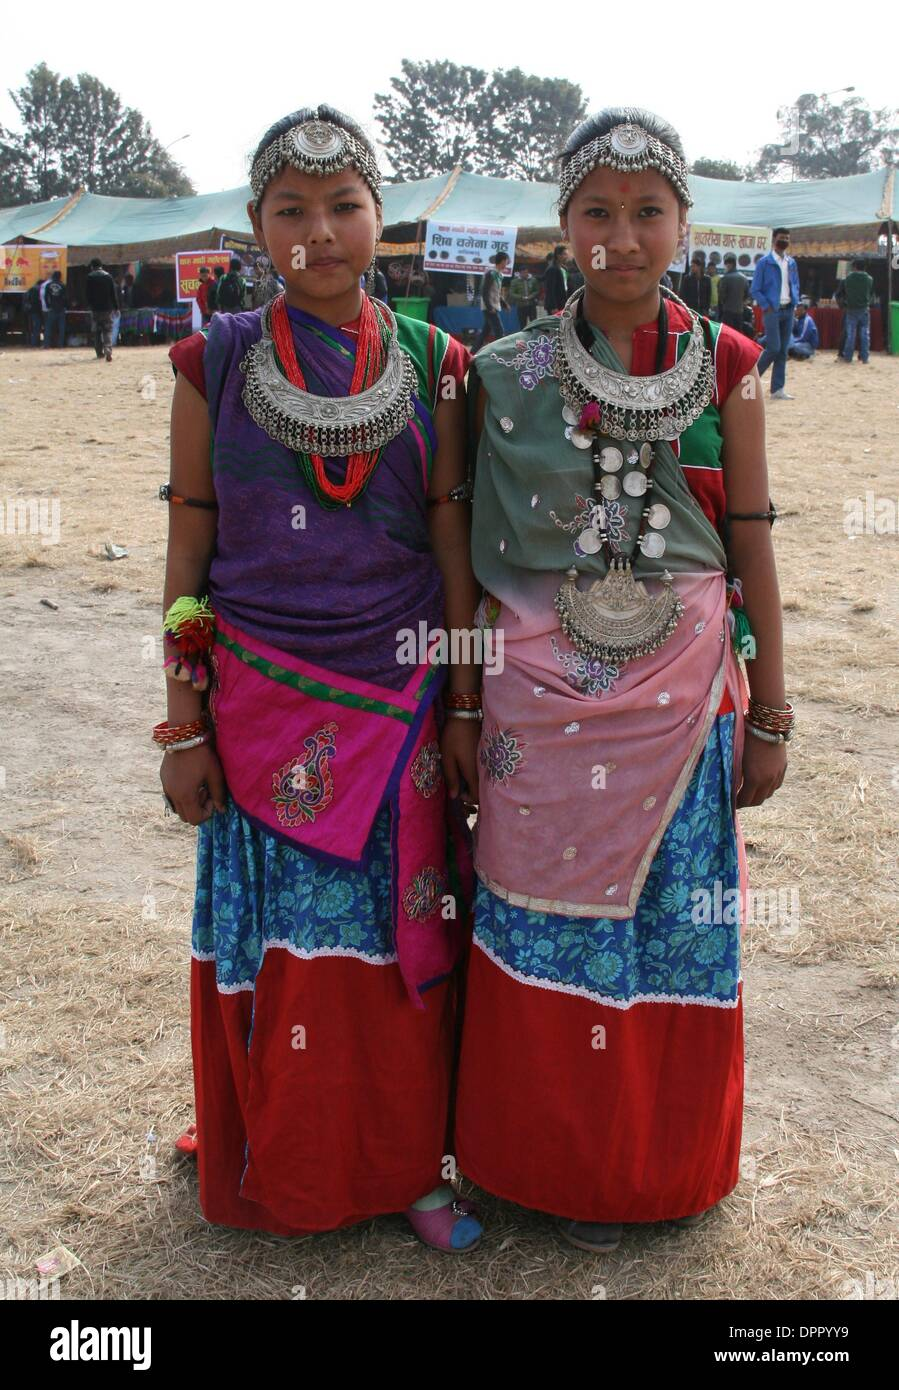 """Kathmandu, Nepal. 15th January 2014. Nepalese Tharu women in traditional clothes join in celebration of the """"Maghi Stock Photo"""